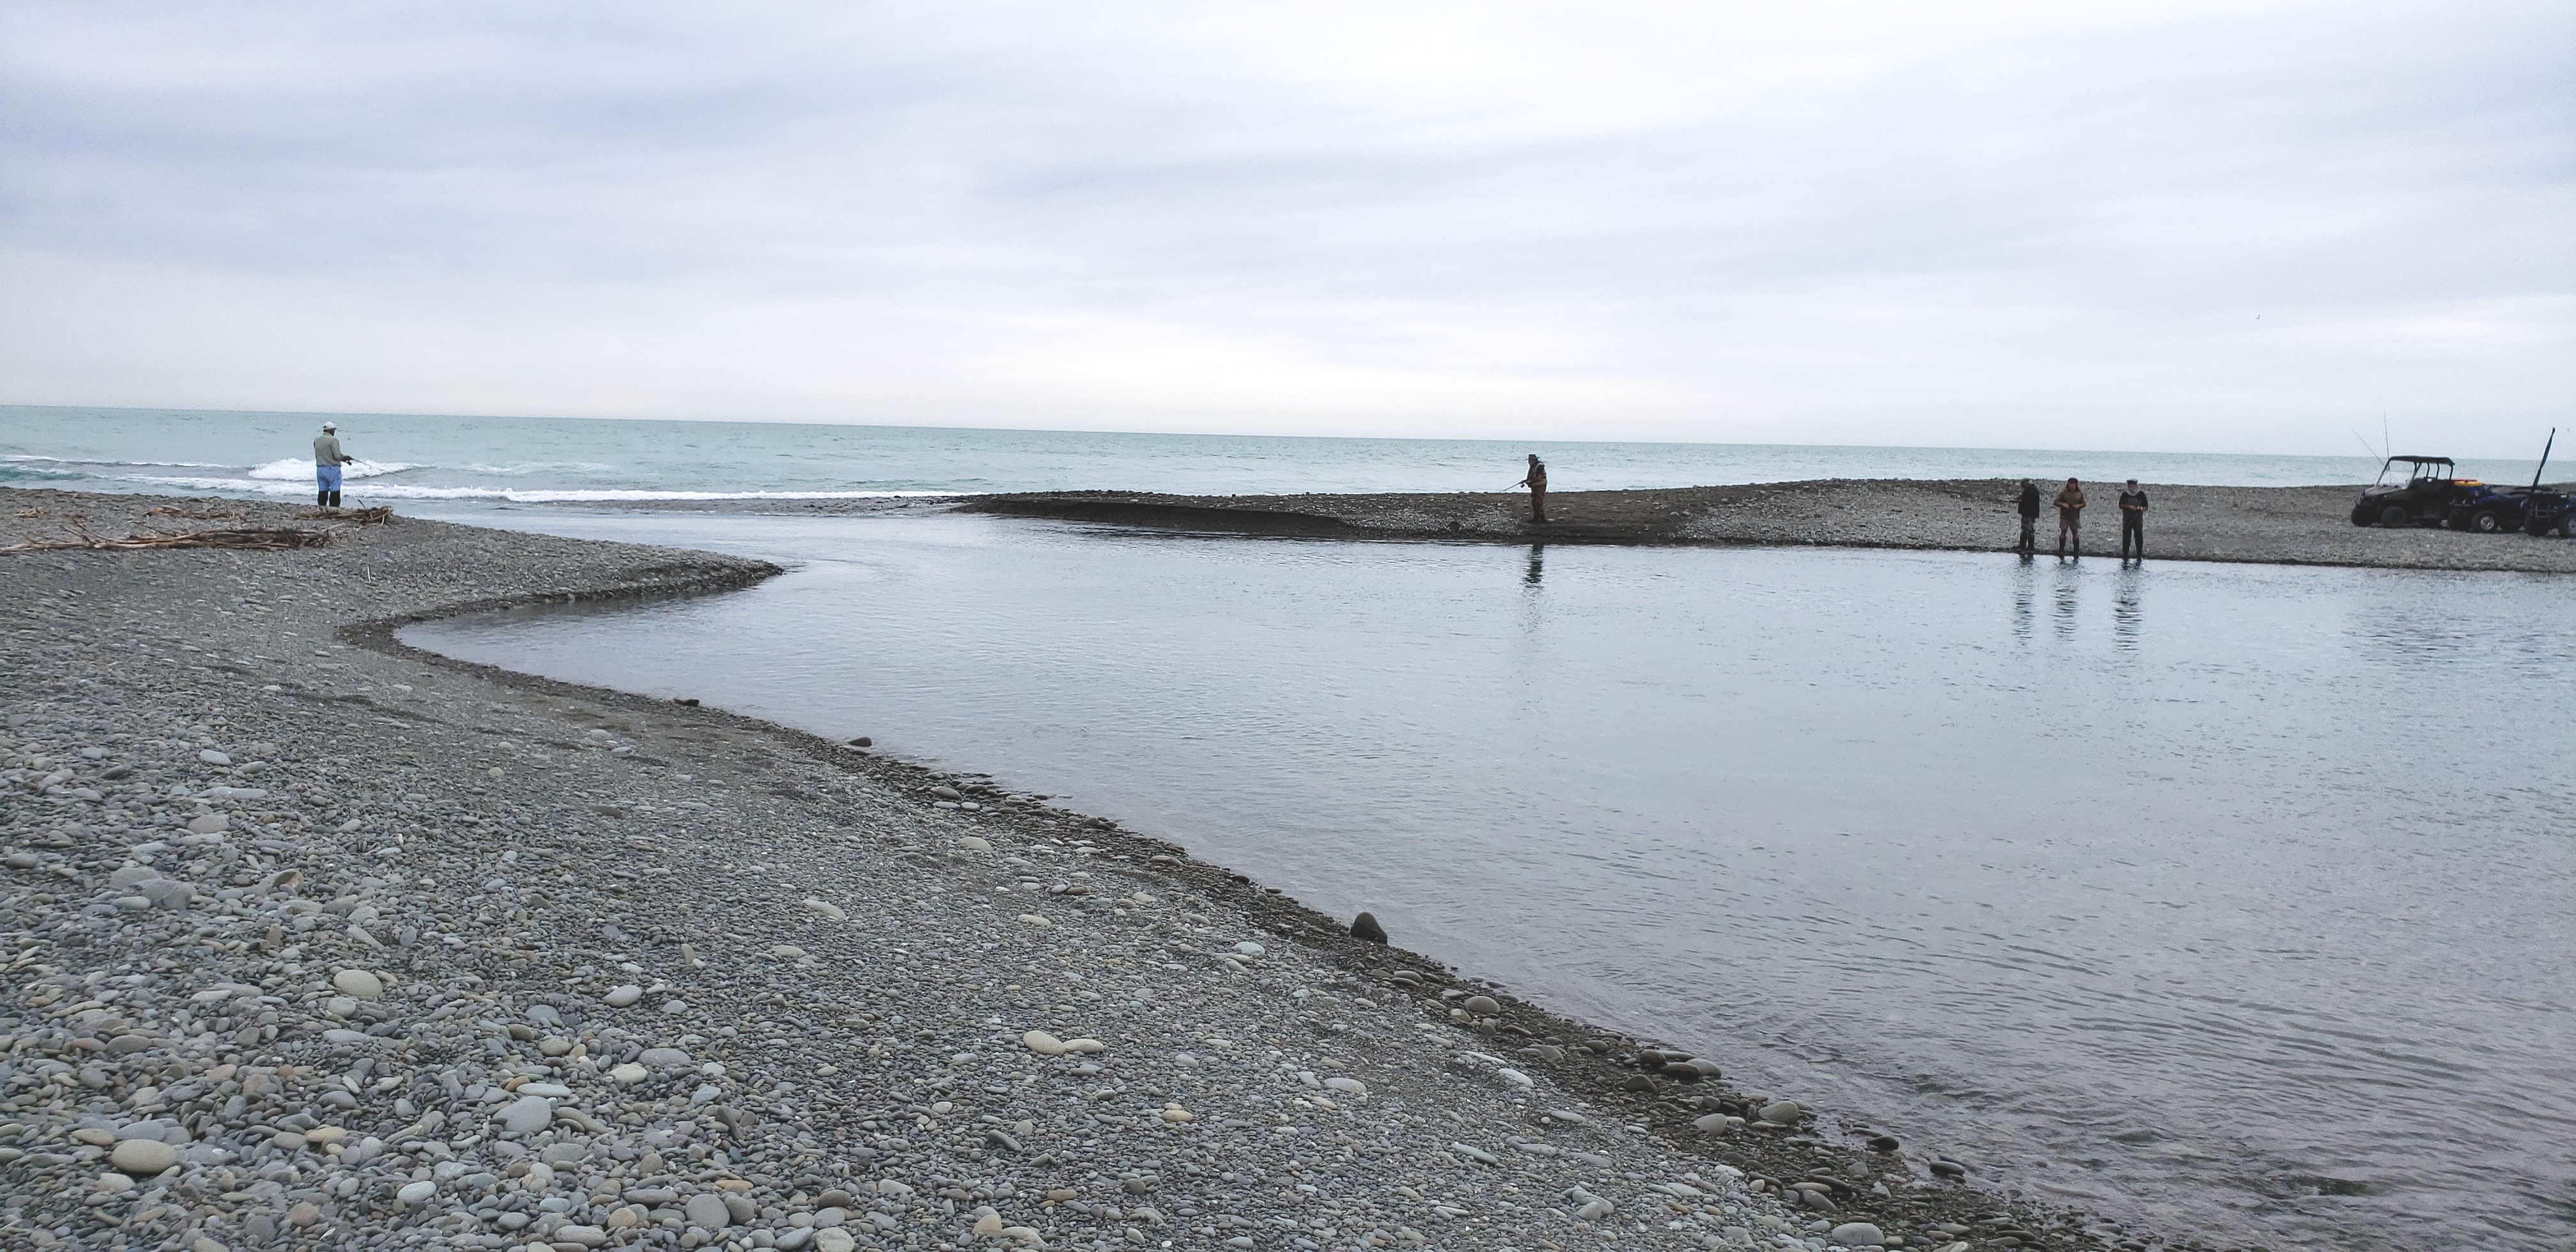 WFR2021.45 Salmon anglers fishing the Rangitata River gut 9 2 21 Credit R Adams